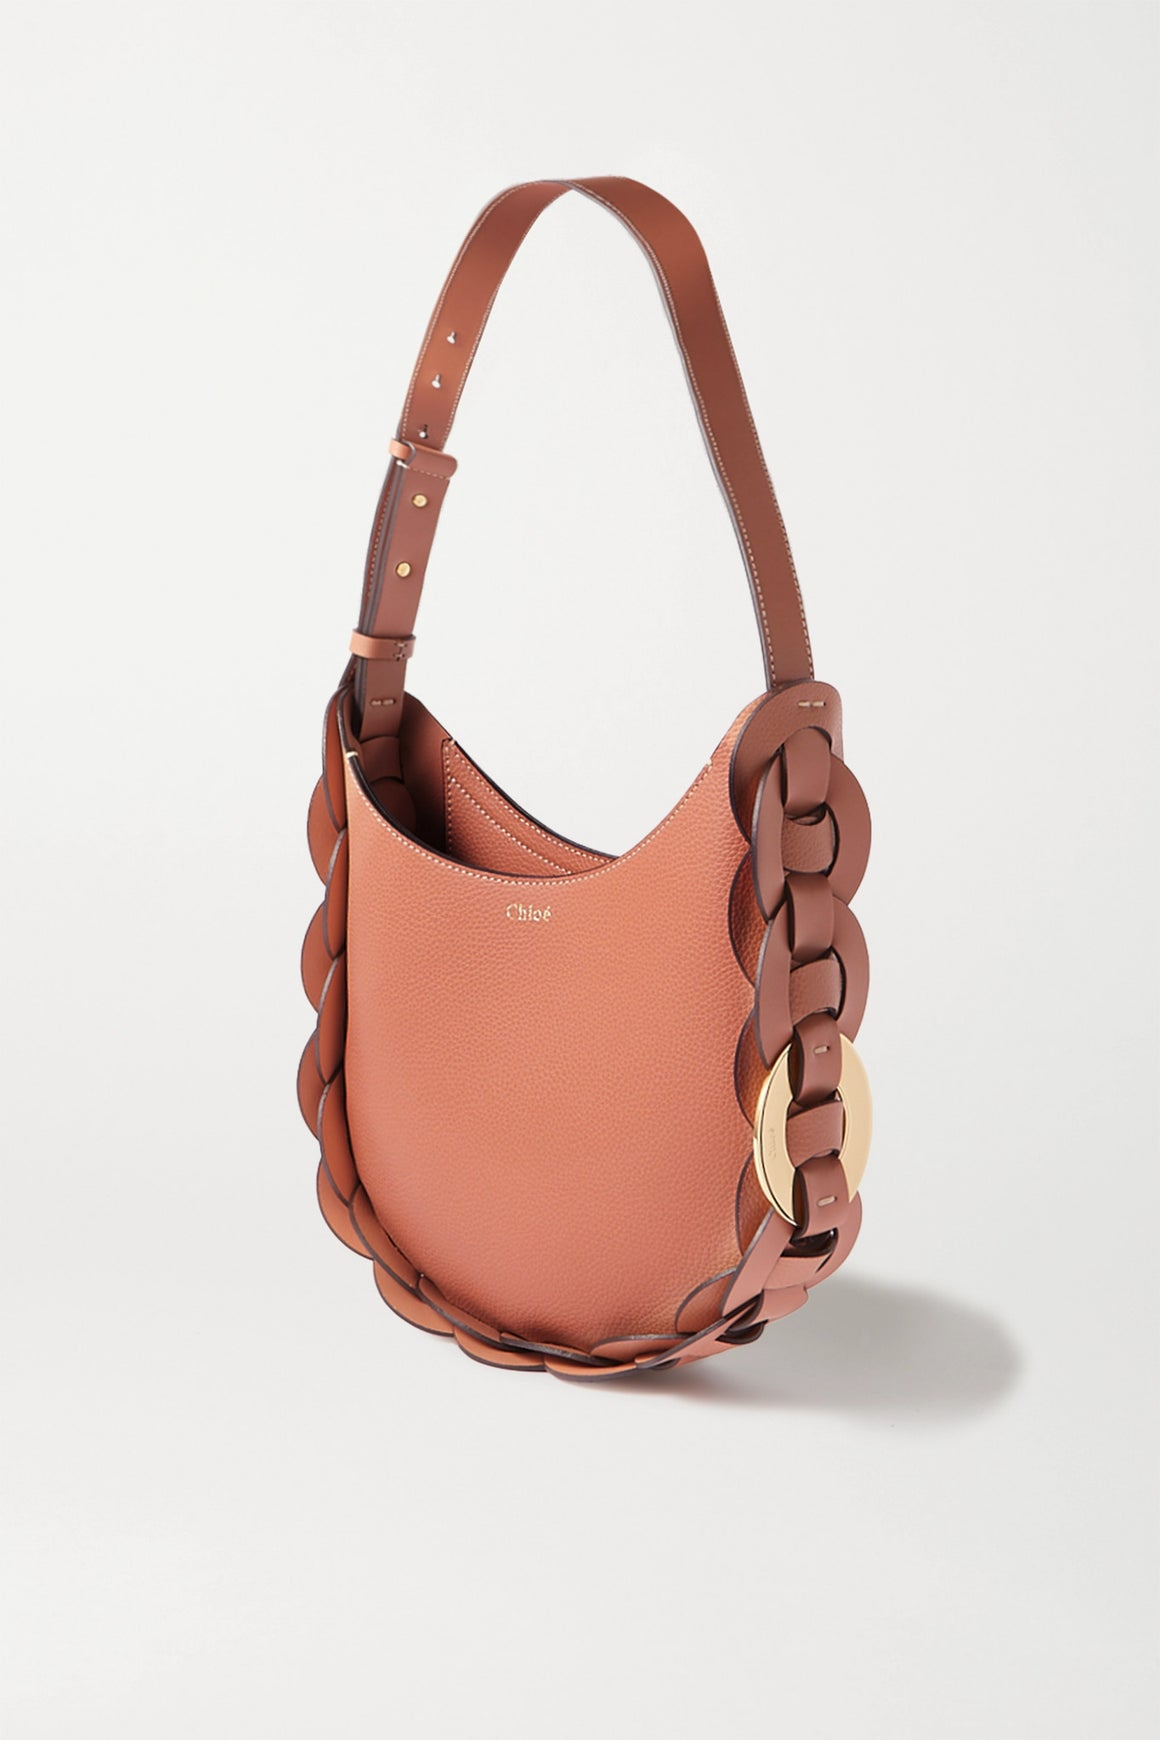 Chloé 'Darryl' Small Braided Textured-Leather Shoulder Bag